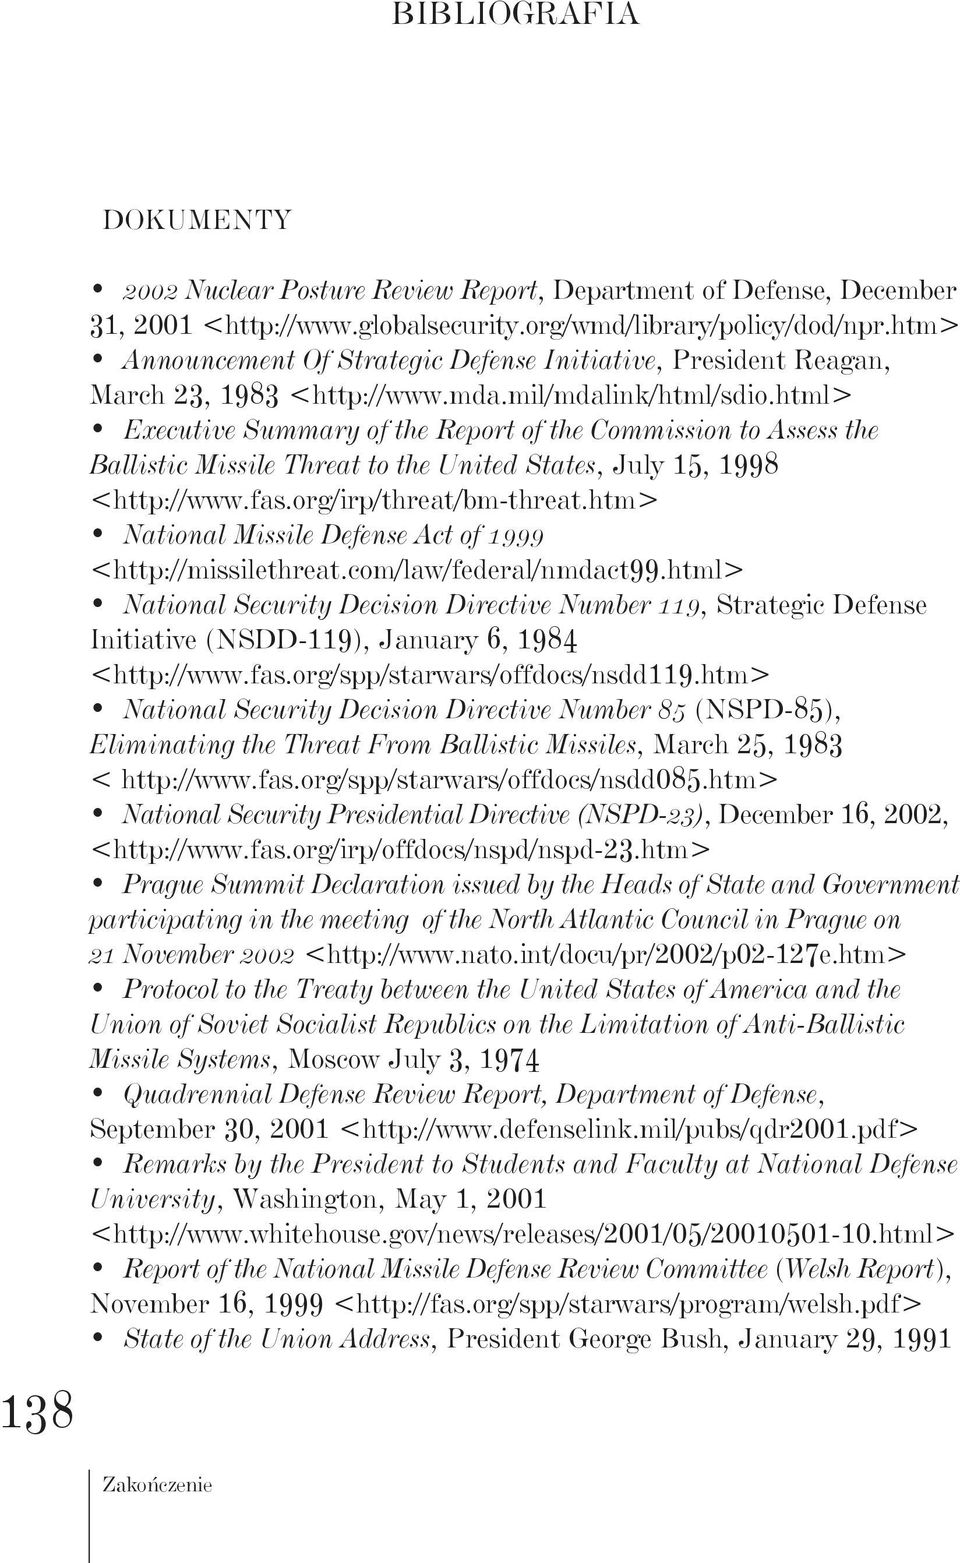 html> Executive Summary of the Report of the Commission to Assess the Ballistic Missile Threat to the United States, July 15, 1998 <http://www.fas.org/irp/threat/bm-threat.